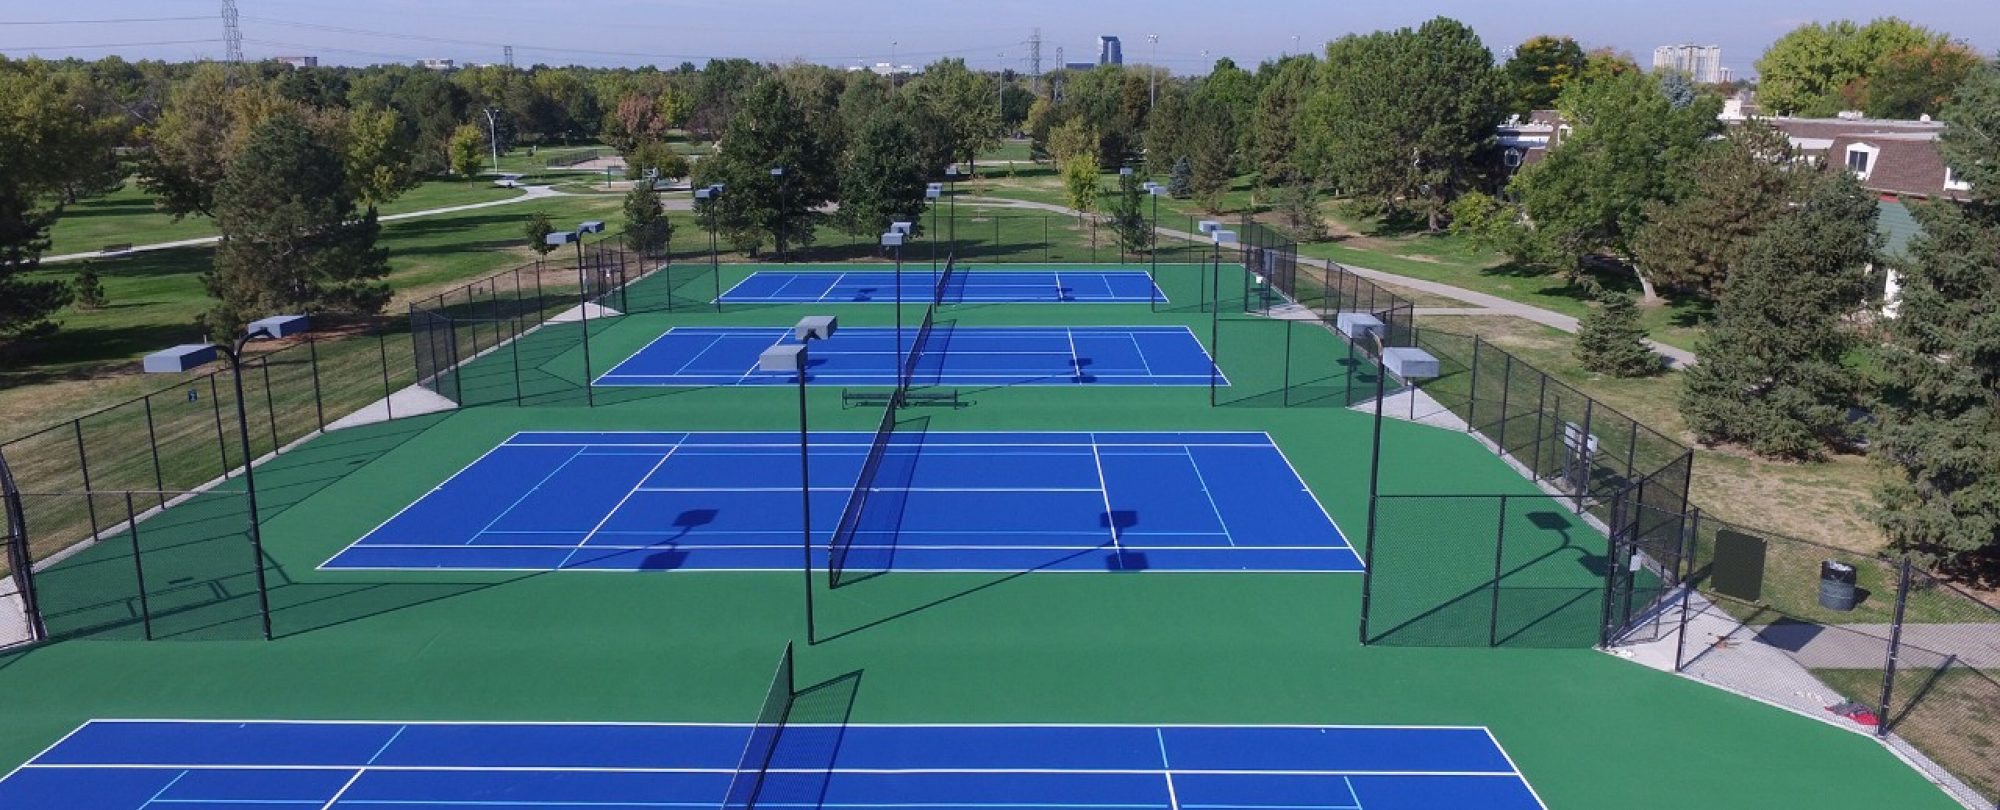 aerial shot of tennis courts